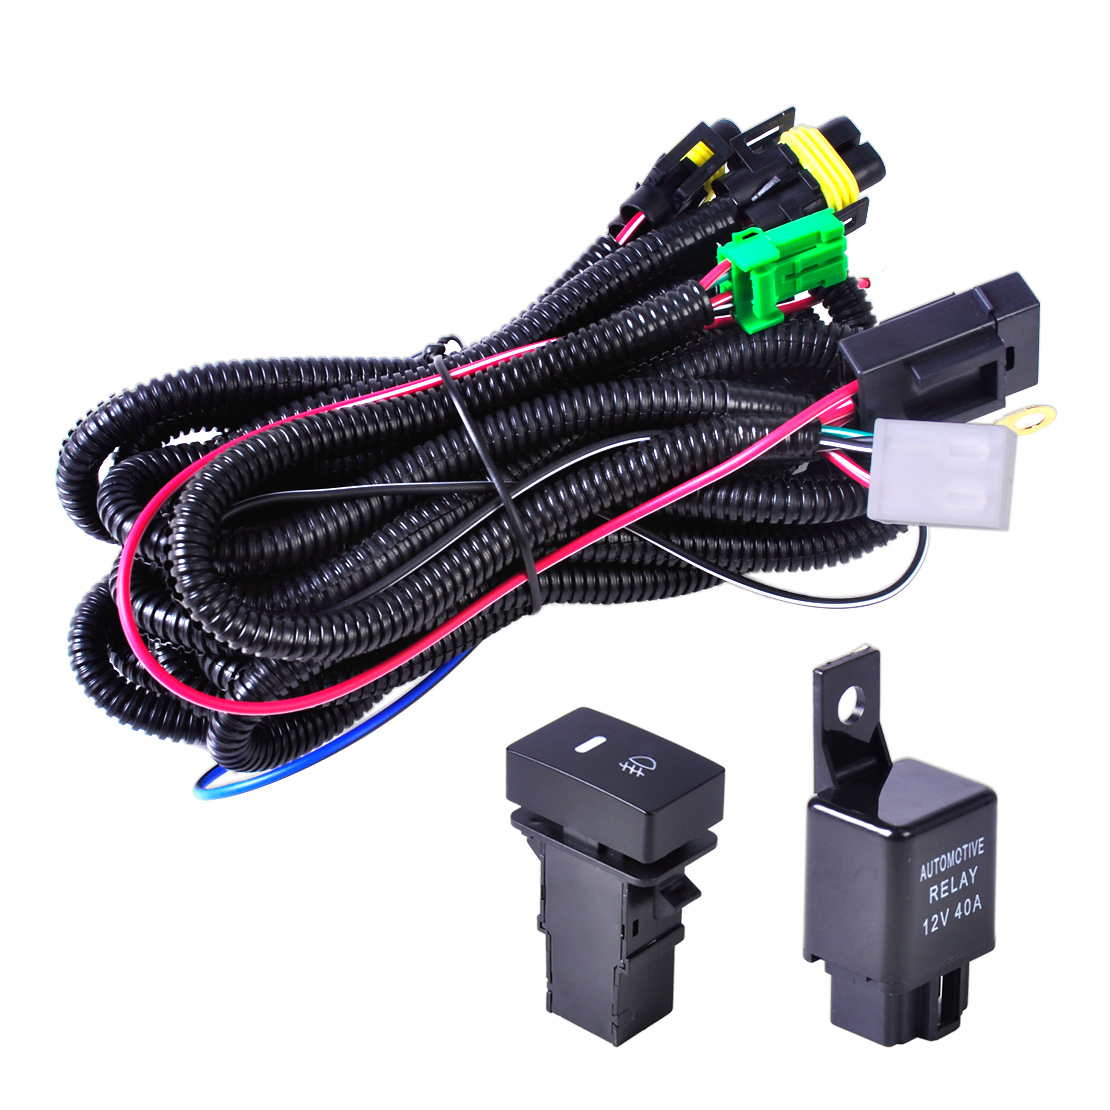 Ford Focus Wiring Harness Kits Automotive Diagrams 1966 Bronco Beler Sockets Wire Switch For H11 Fog Light Lamp